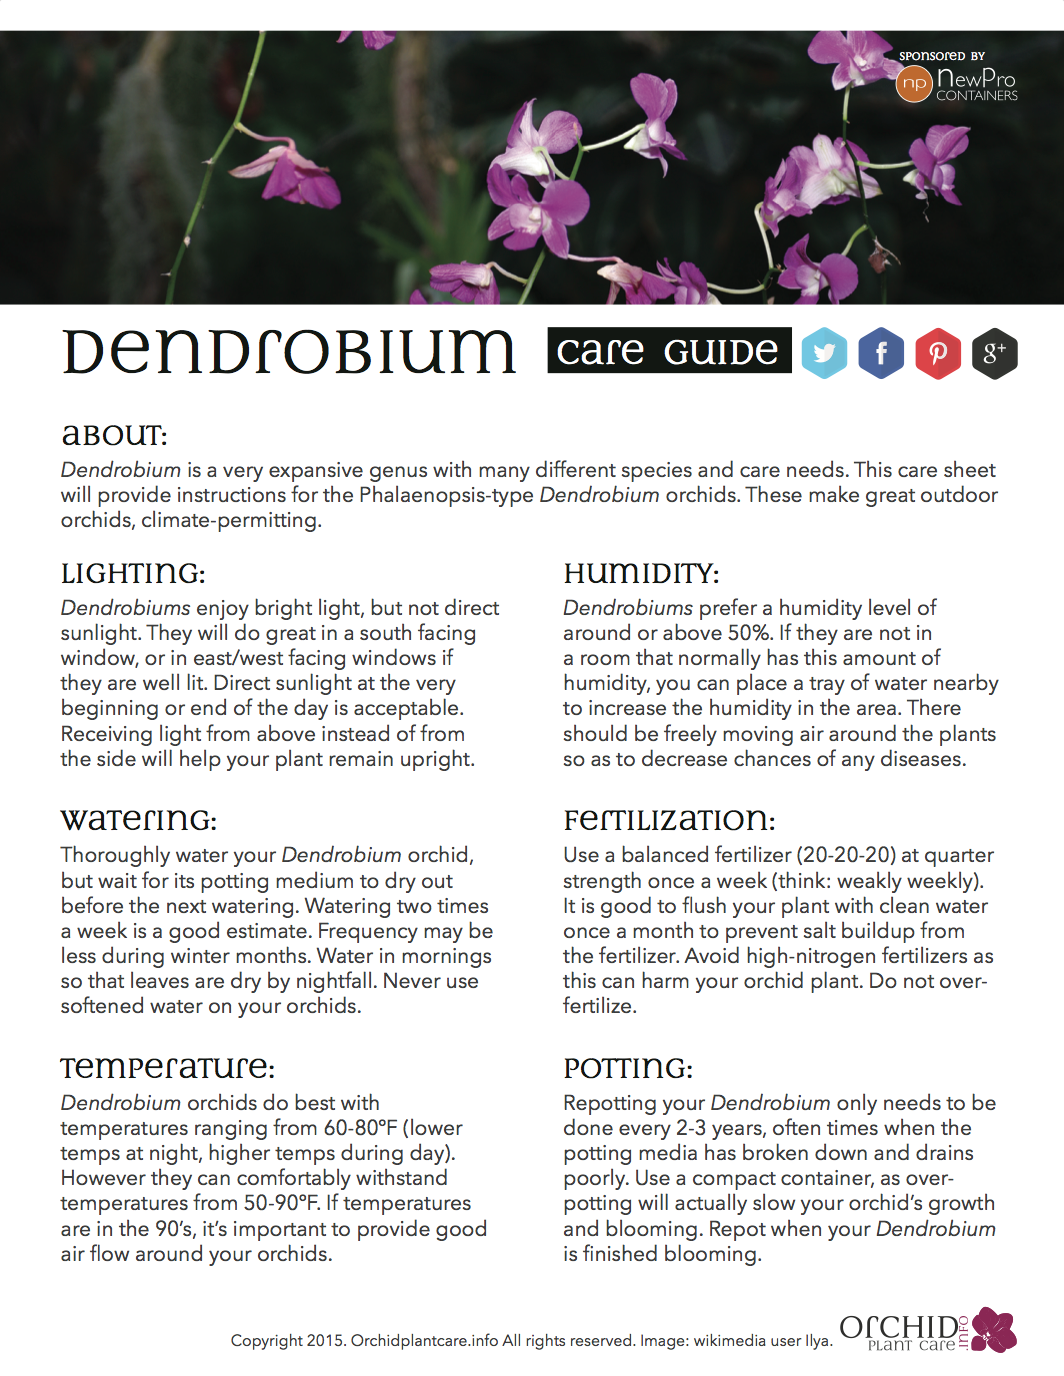 Dendrobium orchid care guide free from orchidplantcarefo